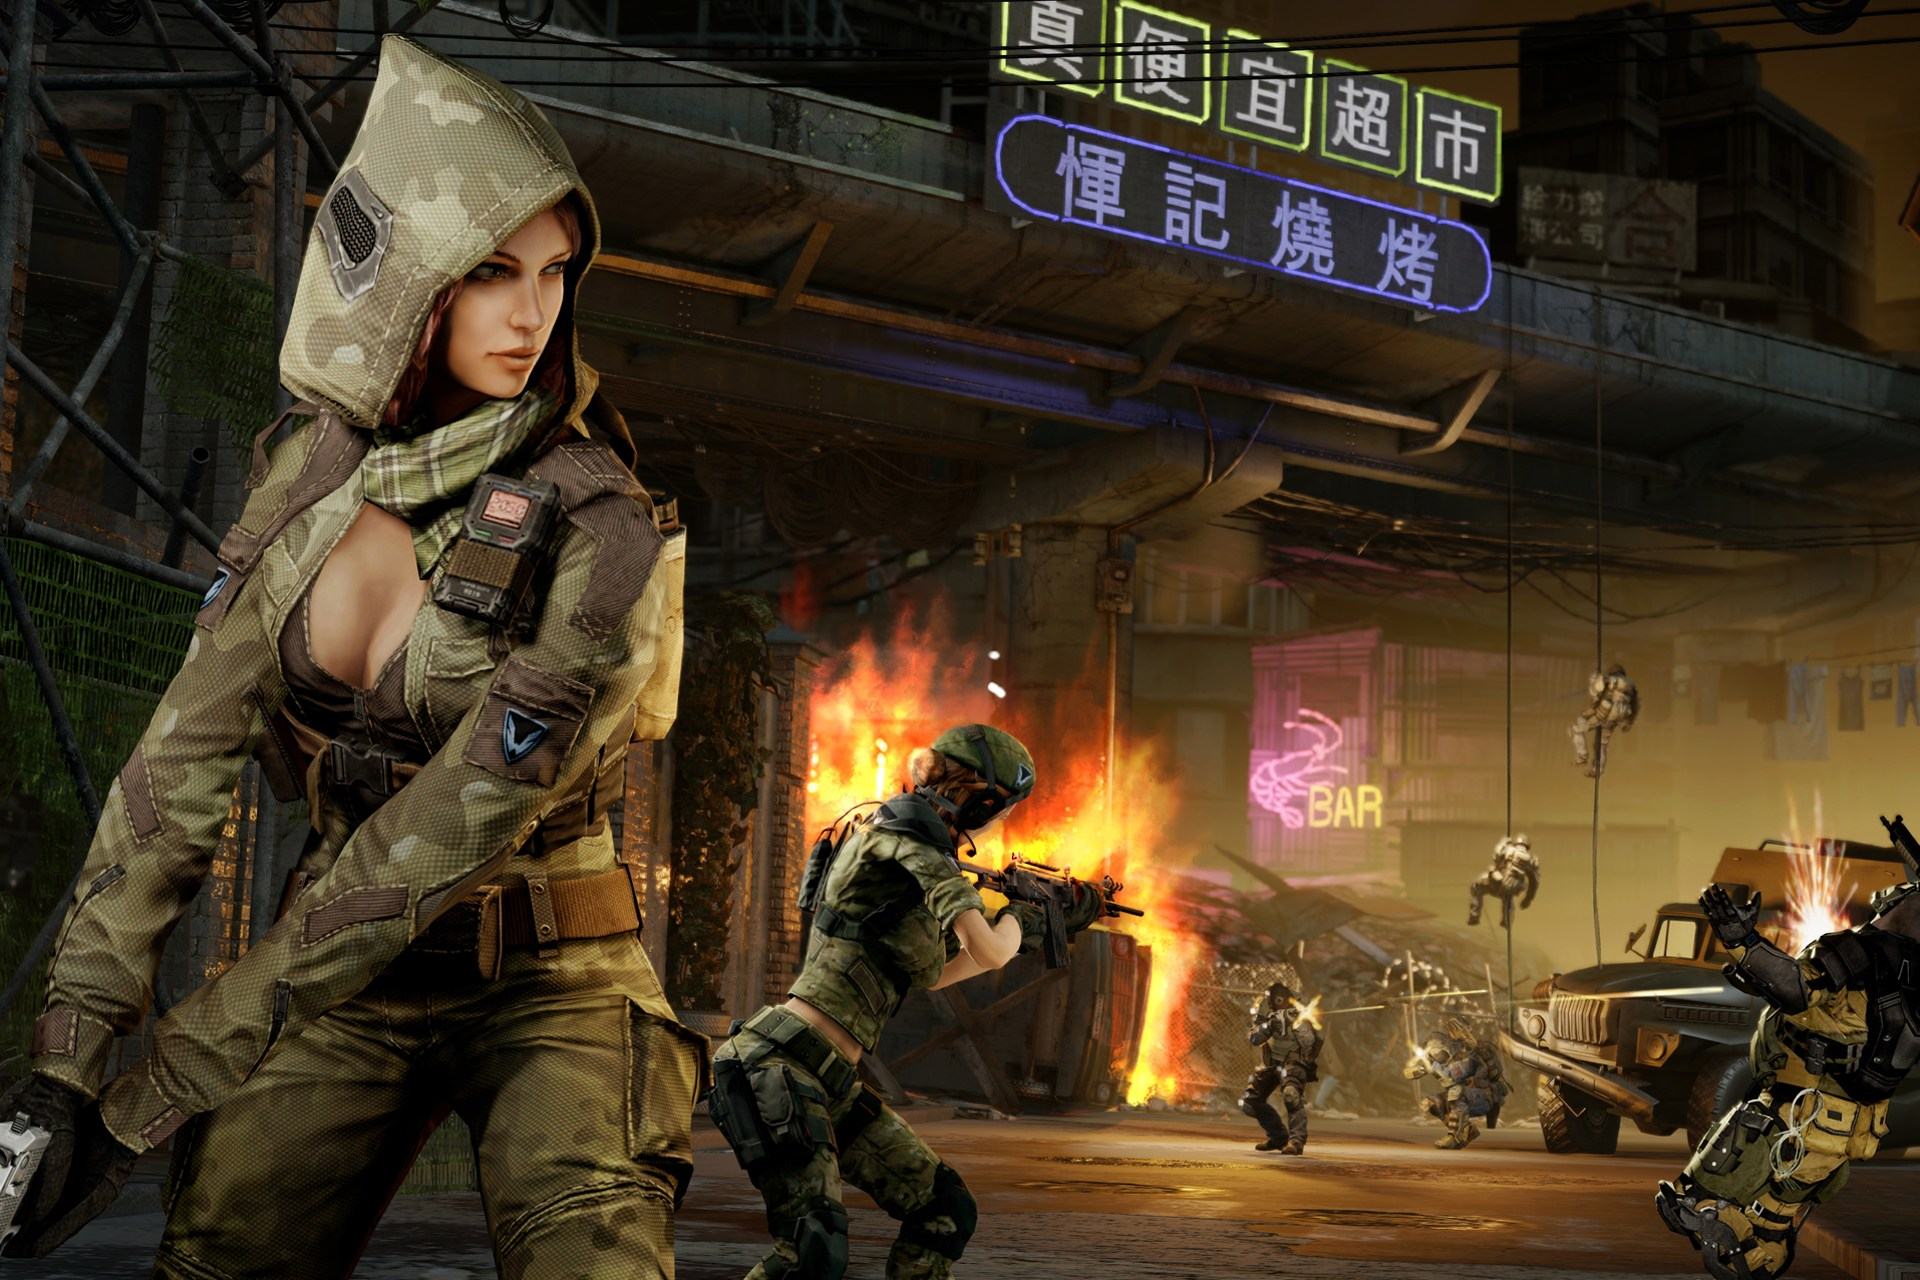 Warface Female Character Image - Females In Uniform -6409